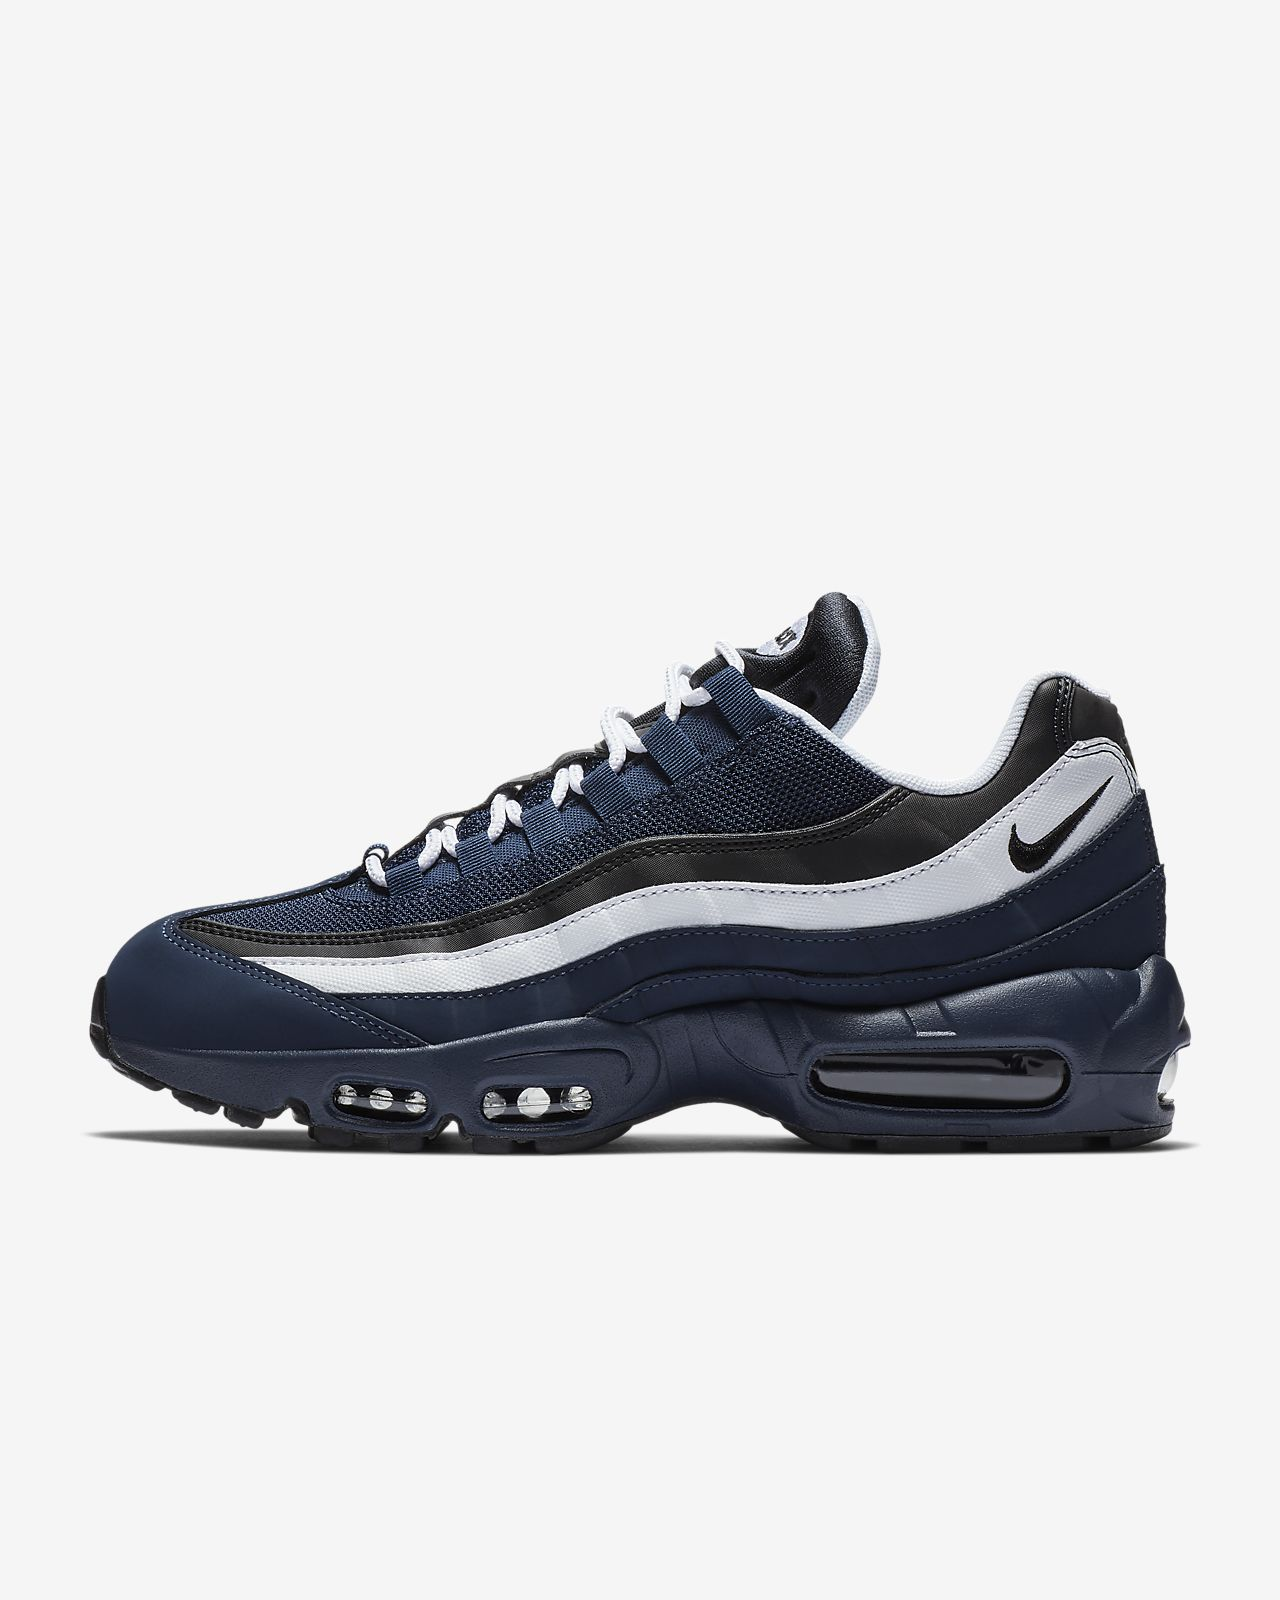 c47377625a2d Nike Air Max 95 Essential Men s Shoe. Nike.com AU